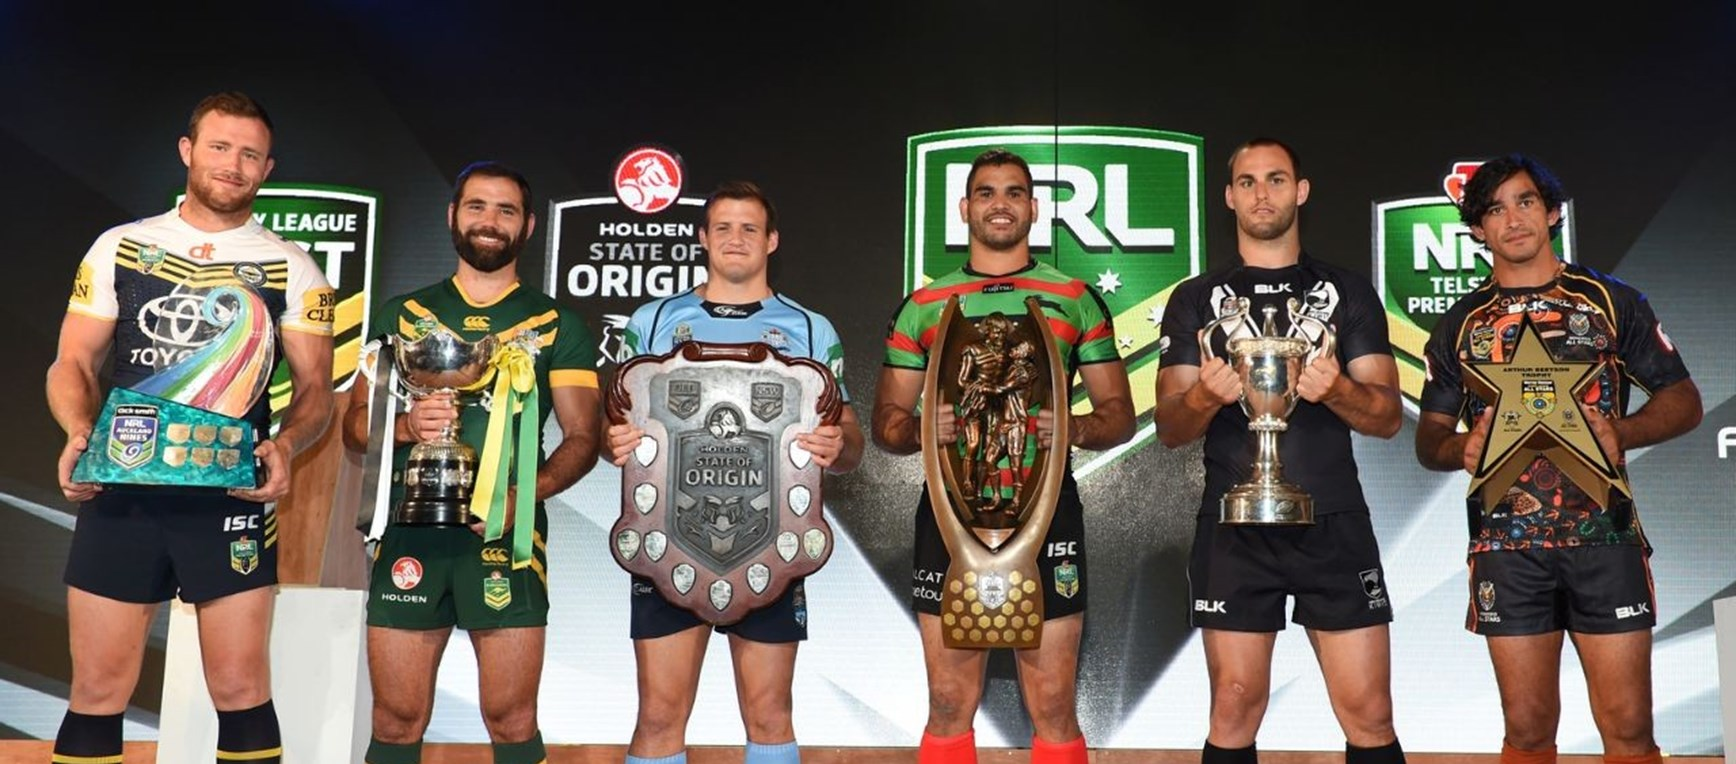 In Pictures | NRL Launch